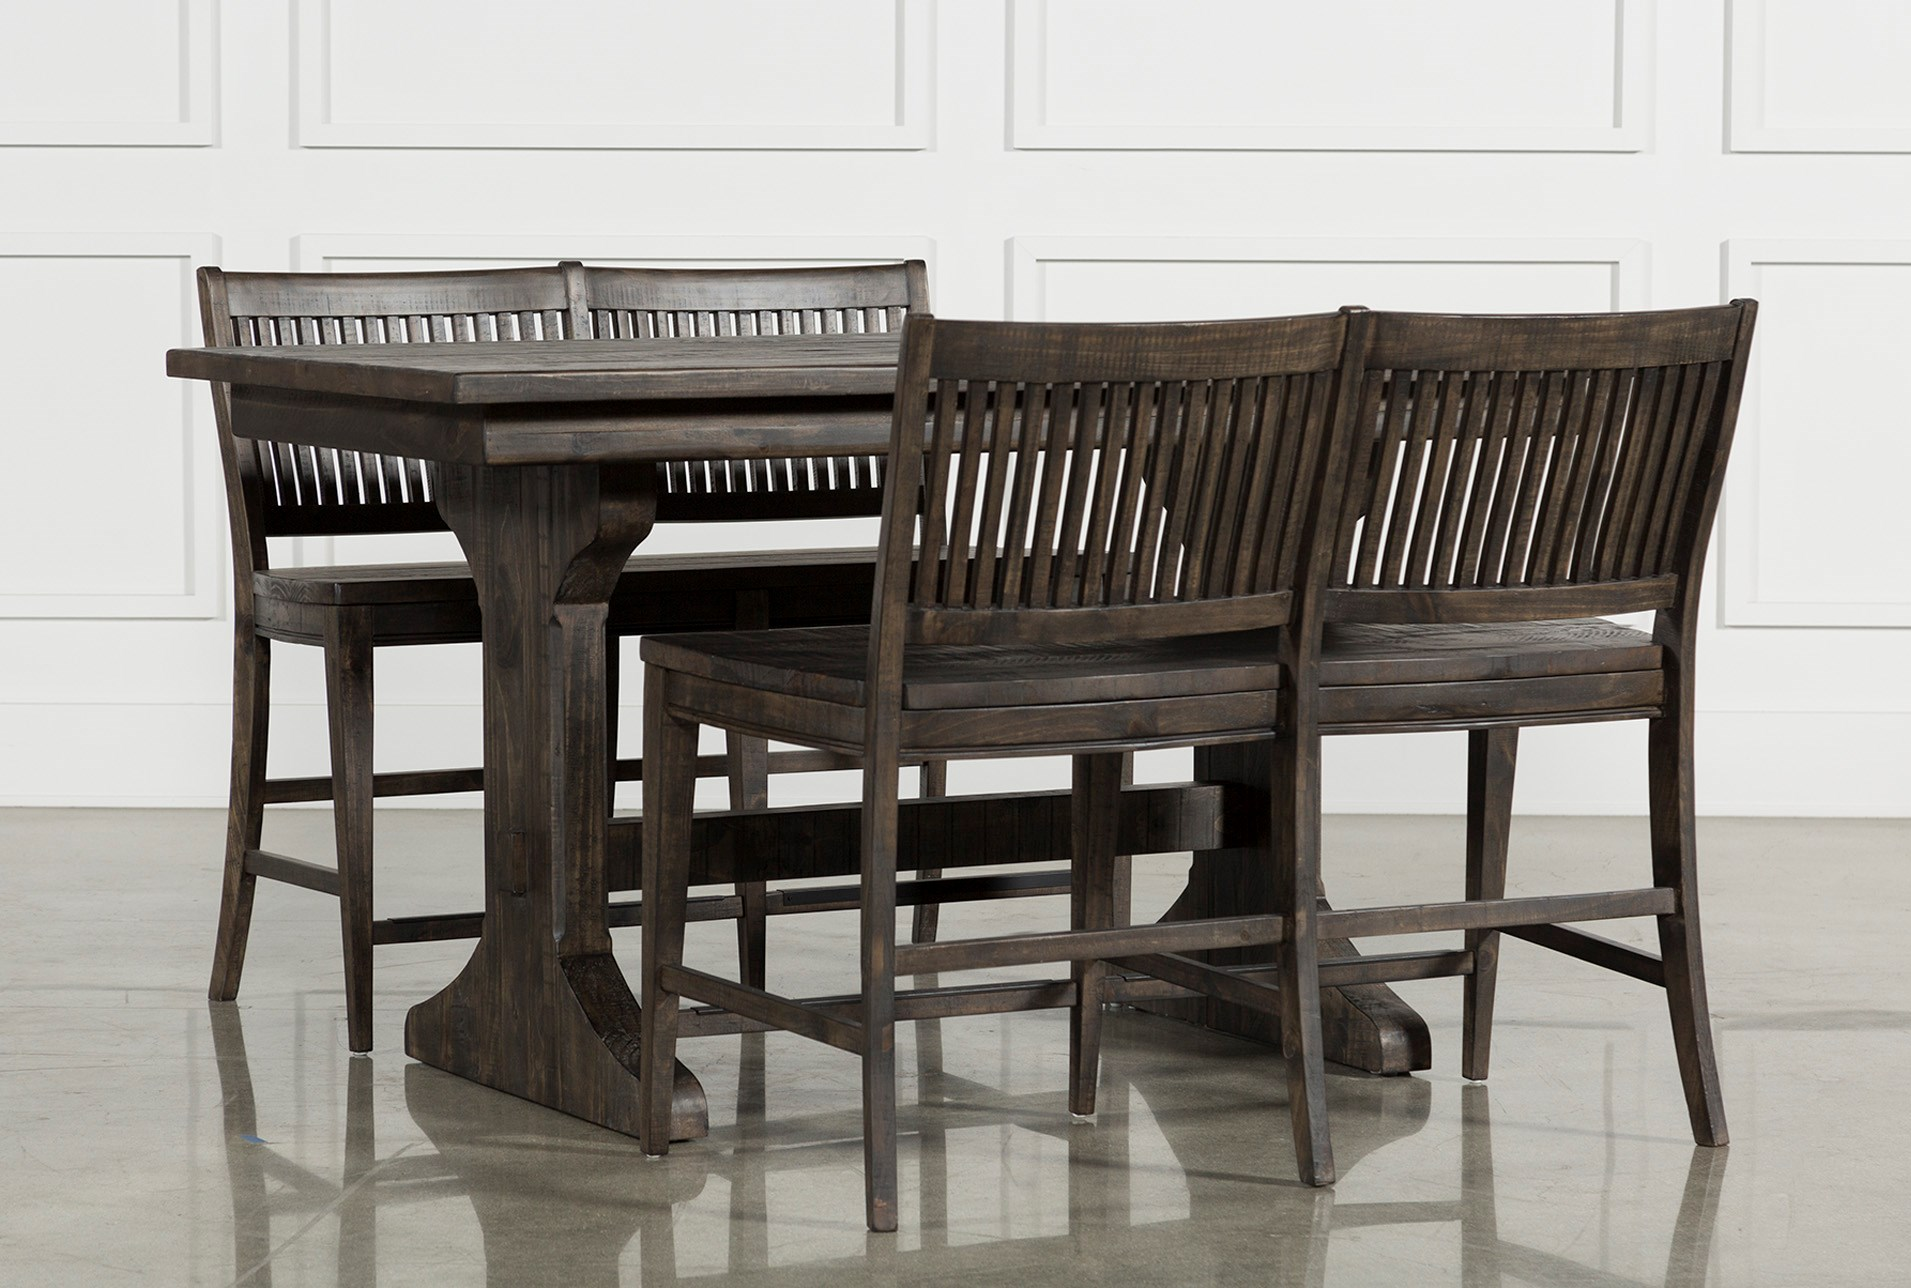 Peachy Valencia 3 Piece Counter Set W Bench Gmtry Best Dining Table And Chair Ideas Images Gmtryco